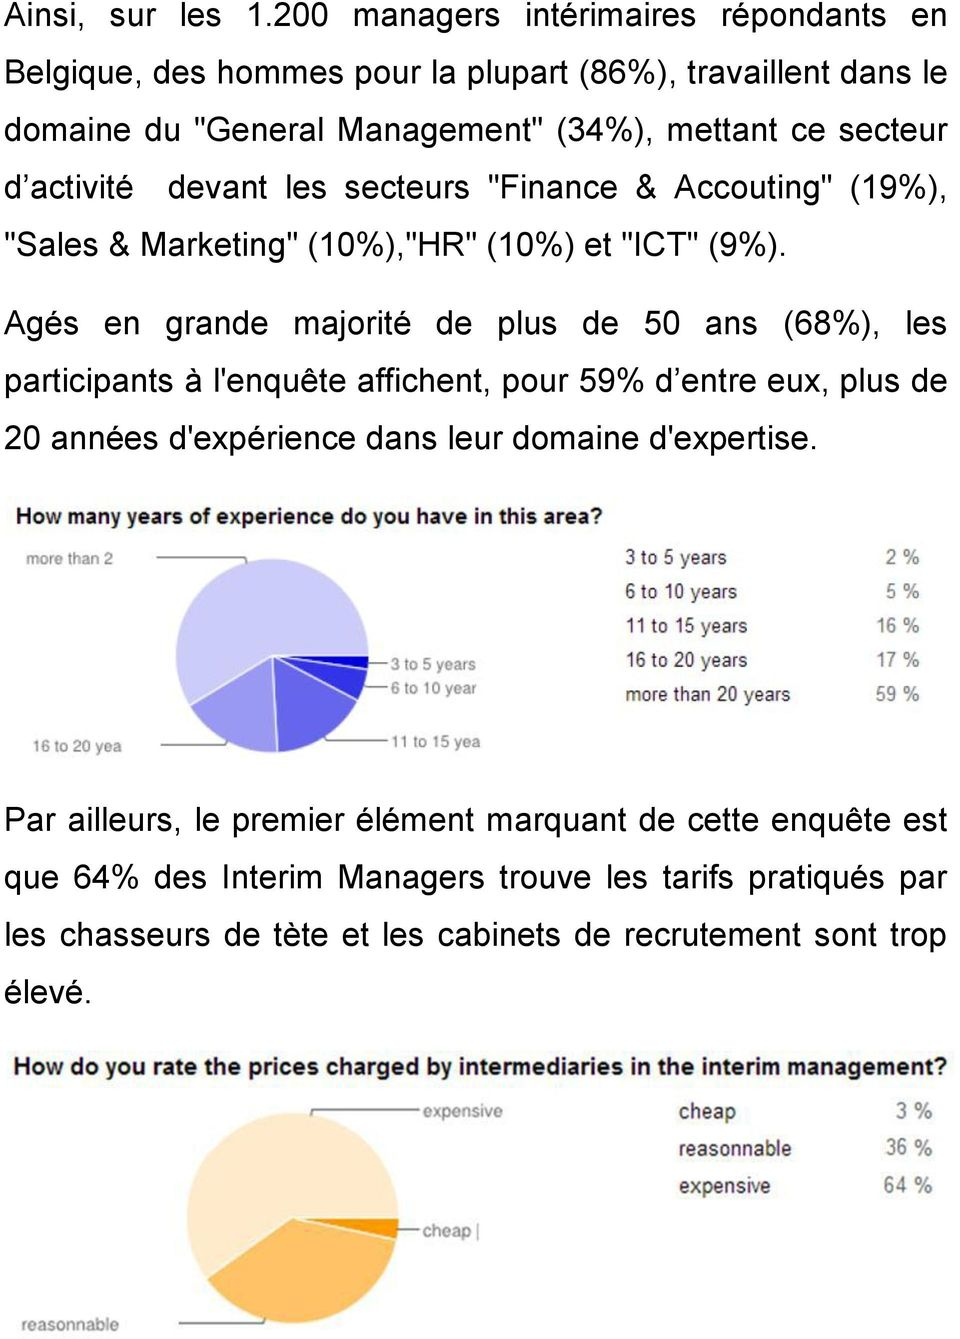 "activité devant les secteurs ""Finance & Accouting"" (19%), ""Sales & Marketing"" (10%),""HR"" (10%) et ""ICT"" (9%)."